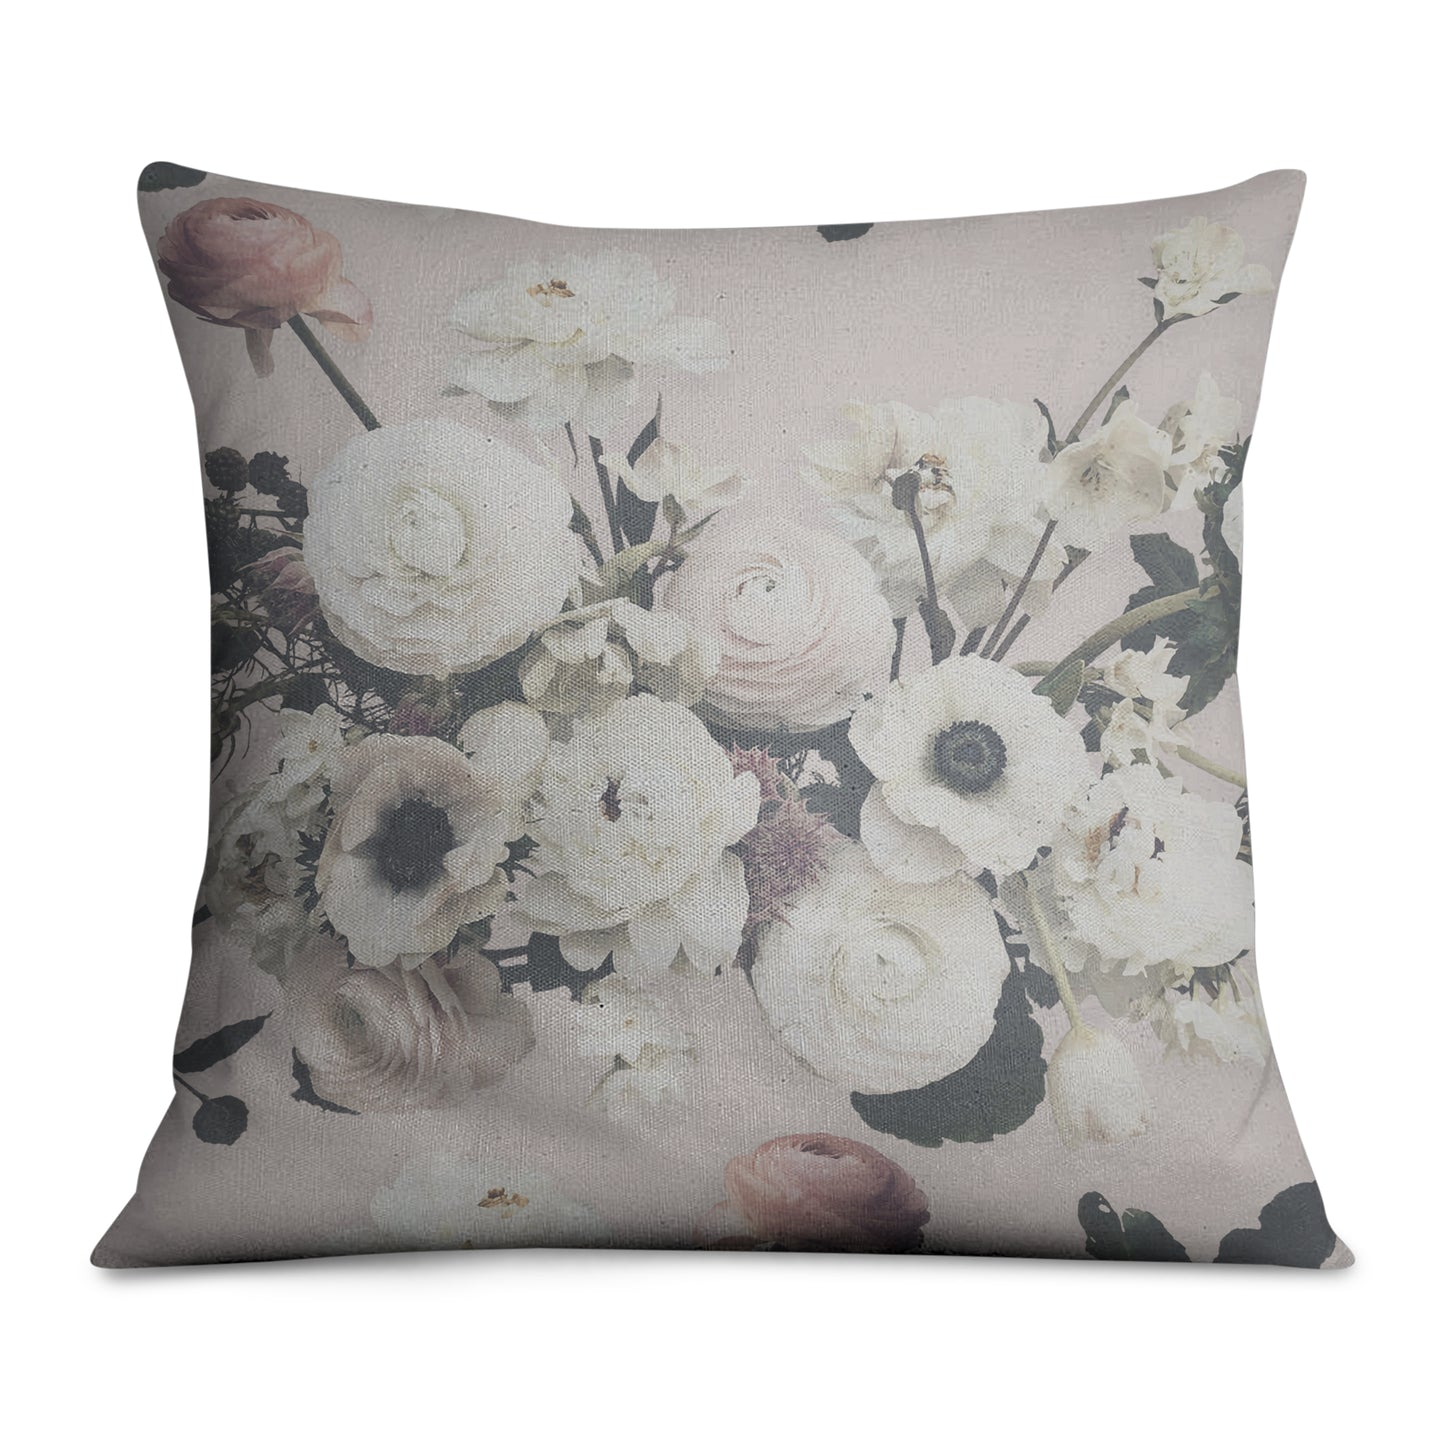 Into the Garden Blush Pillow